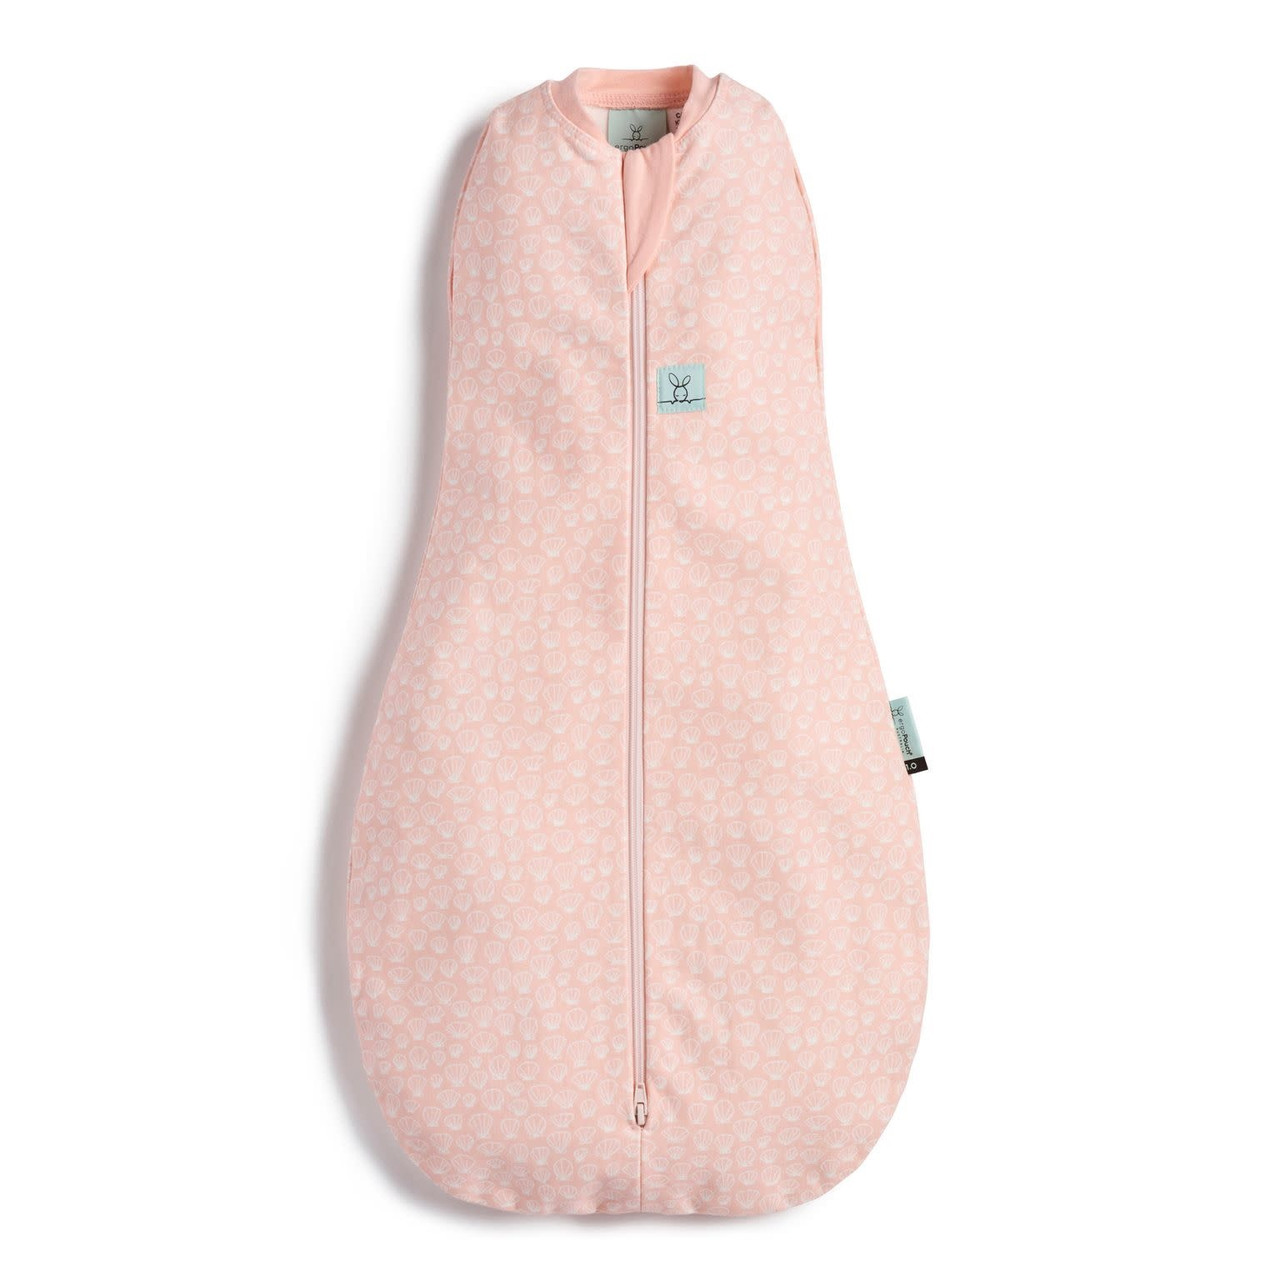 Ergopouch Cocoon Swaddle Bag 1.0 tog 6-12 Months SHELLS at Baby Barn Discounts ErgoPouch cocoon 1.0 tog is an escape-proof swaddle which converts to a sleeping bag.